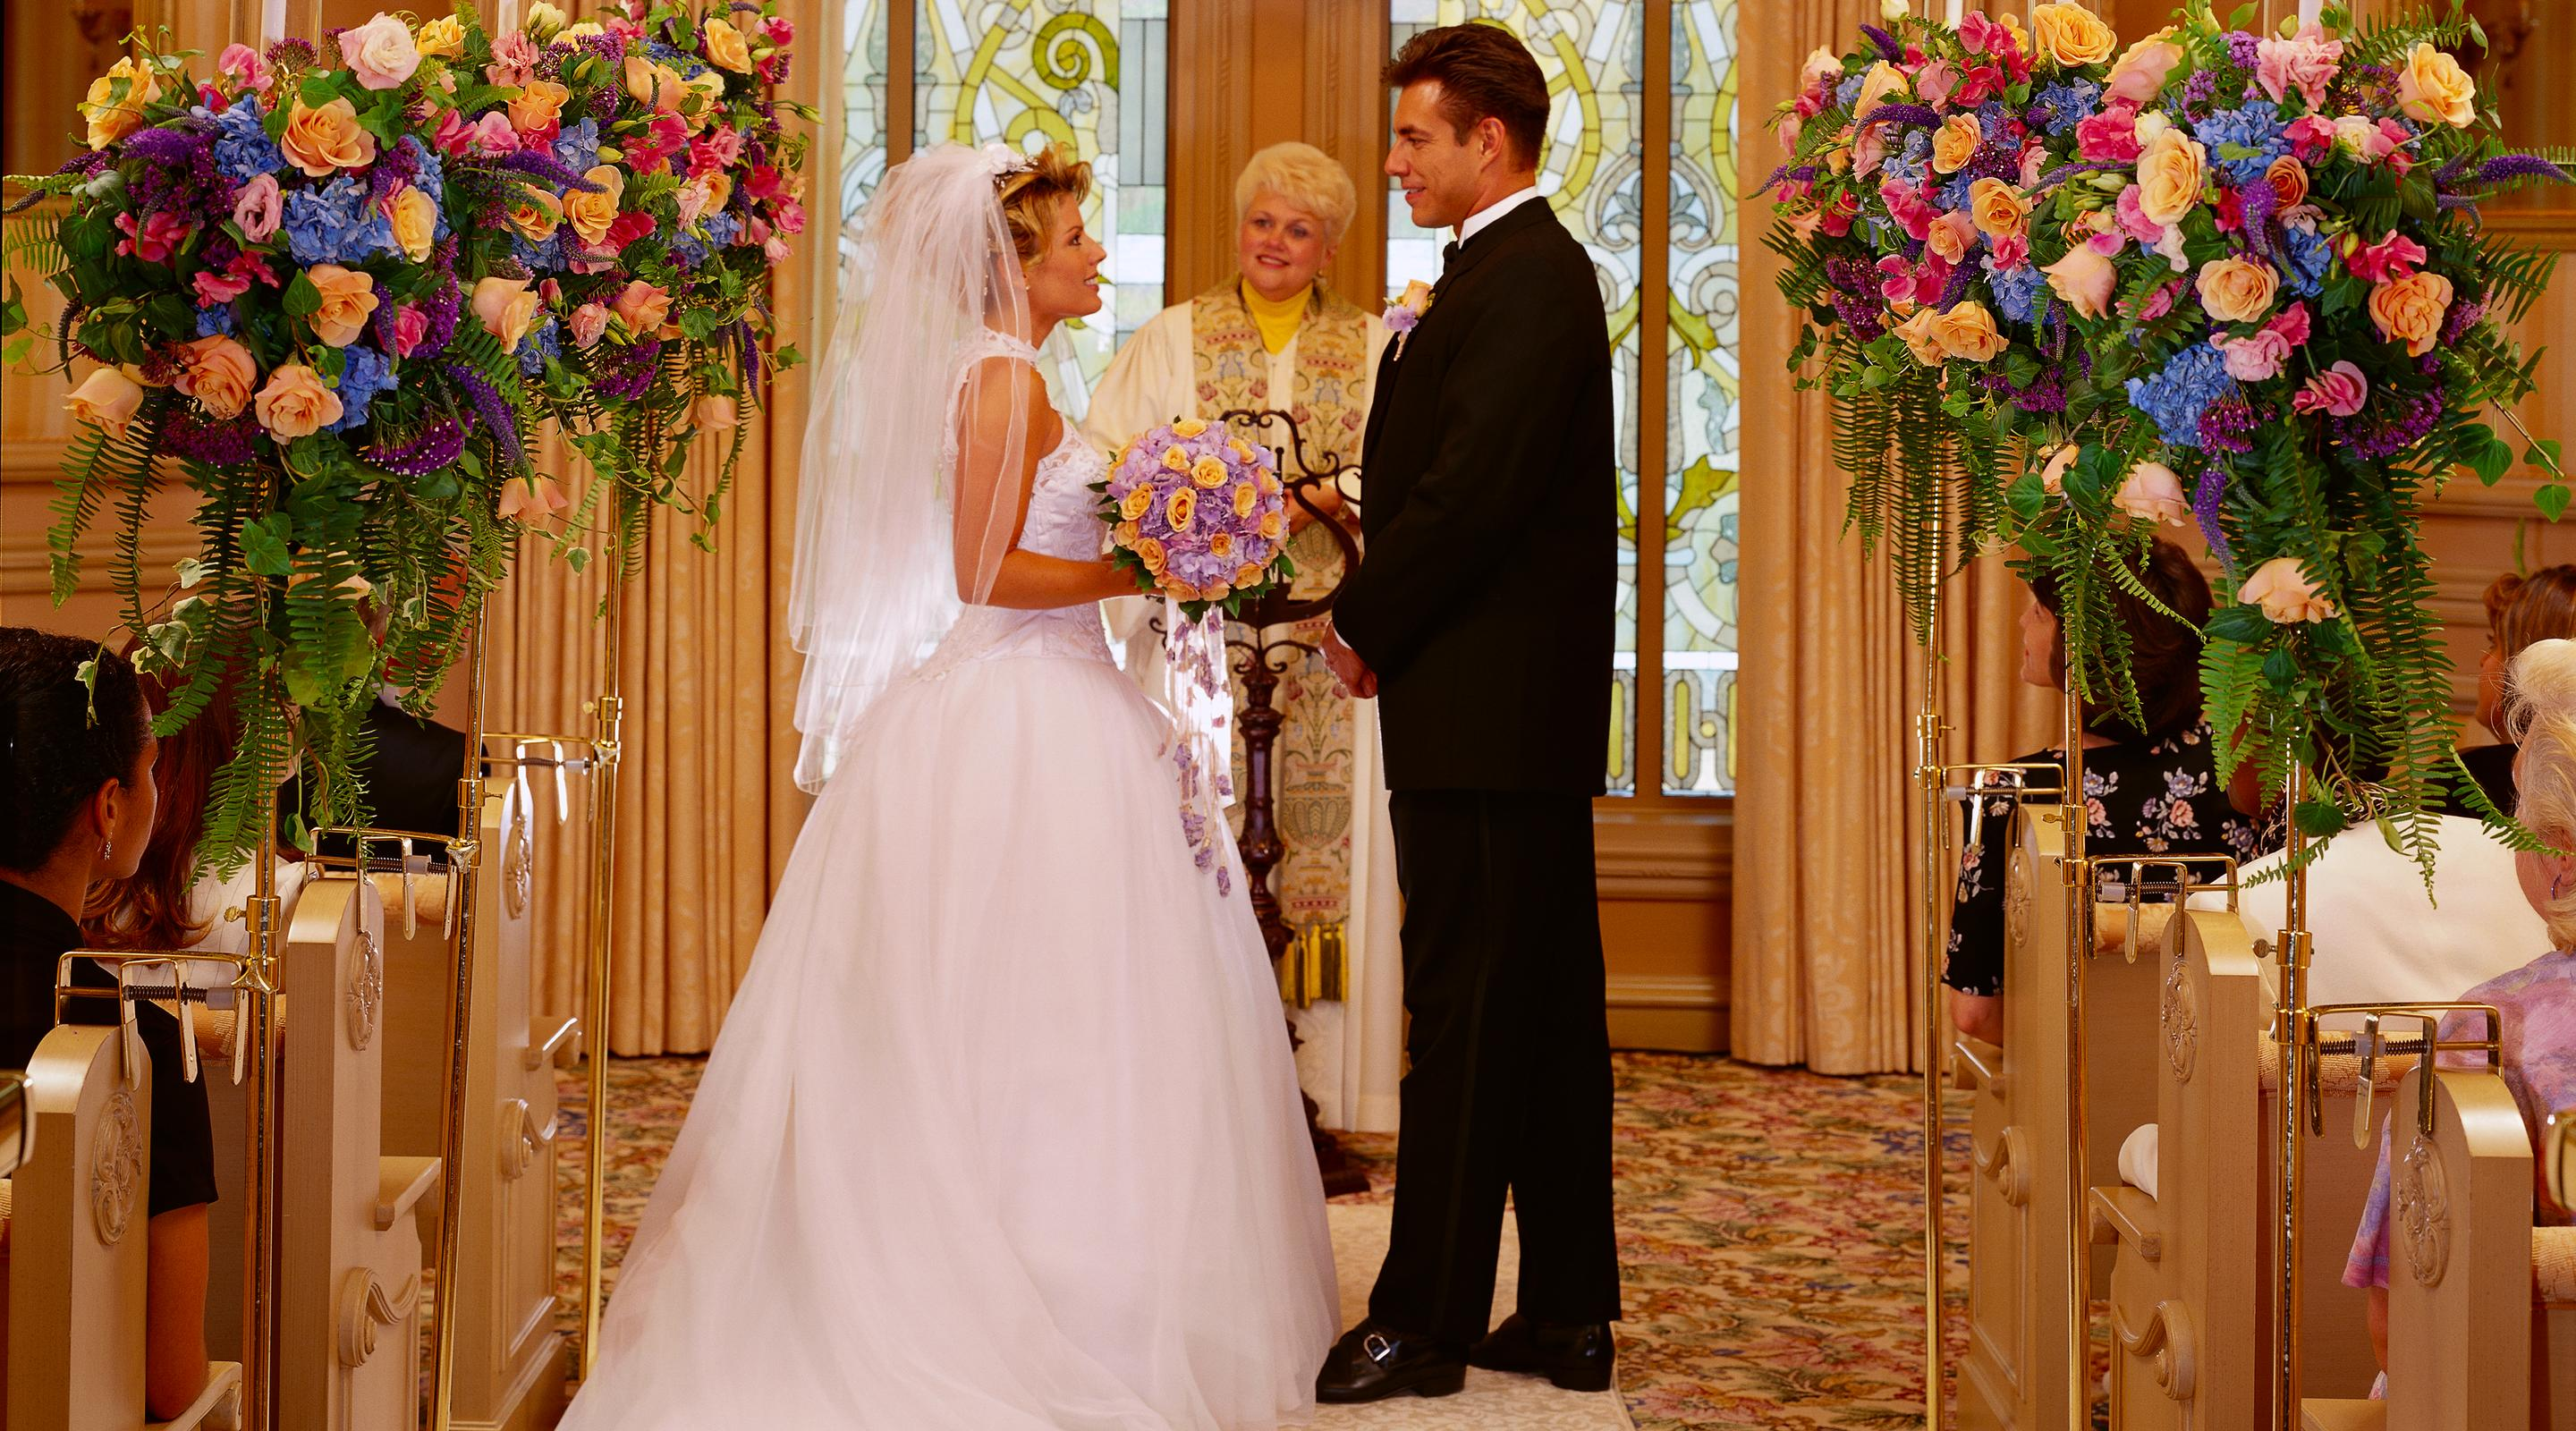 Best Wedding Chapels In Las Vegas Mgm Resorts Mgm Resorts